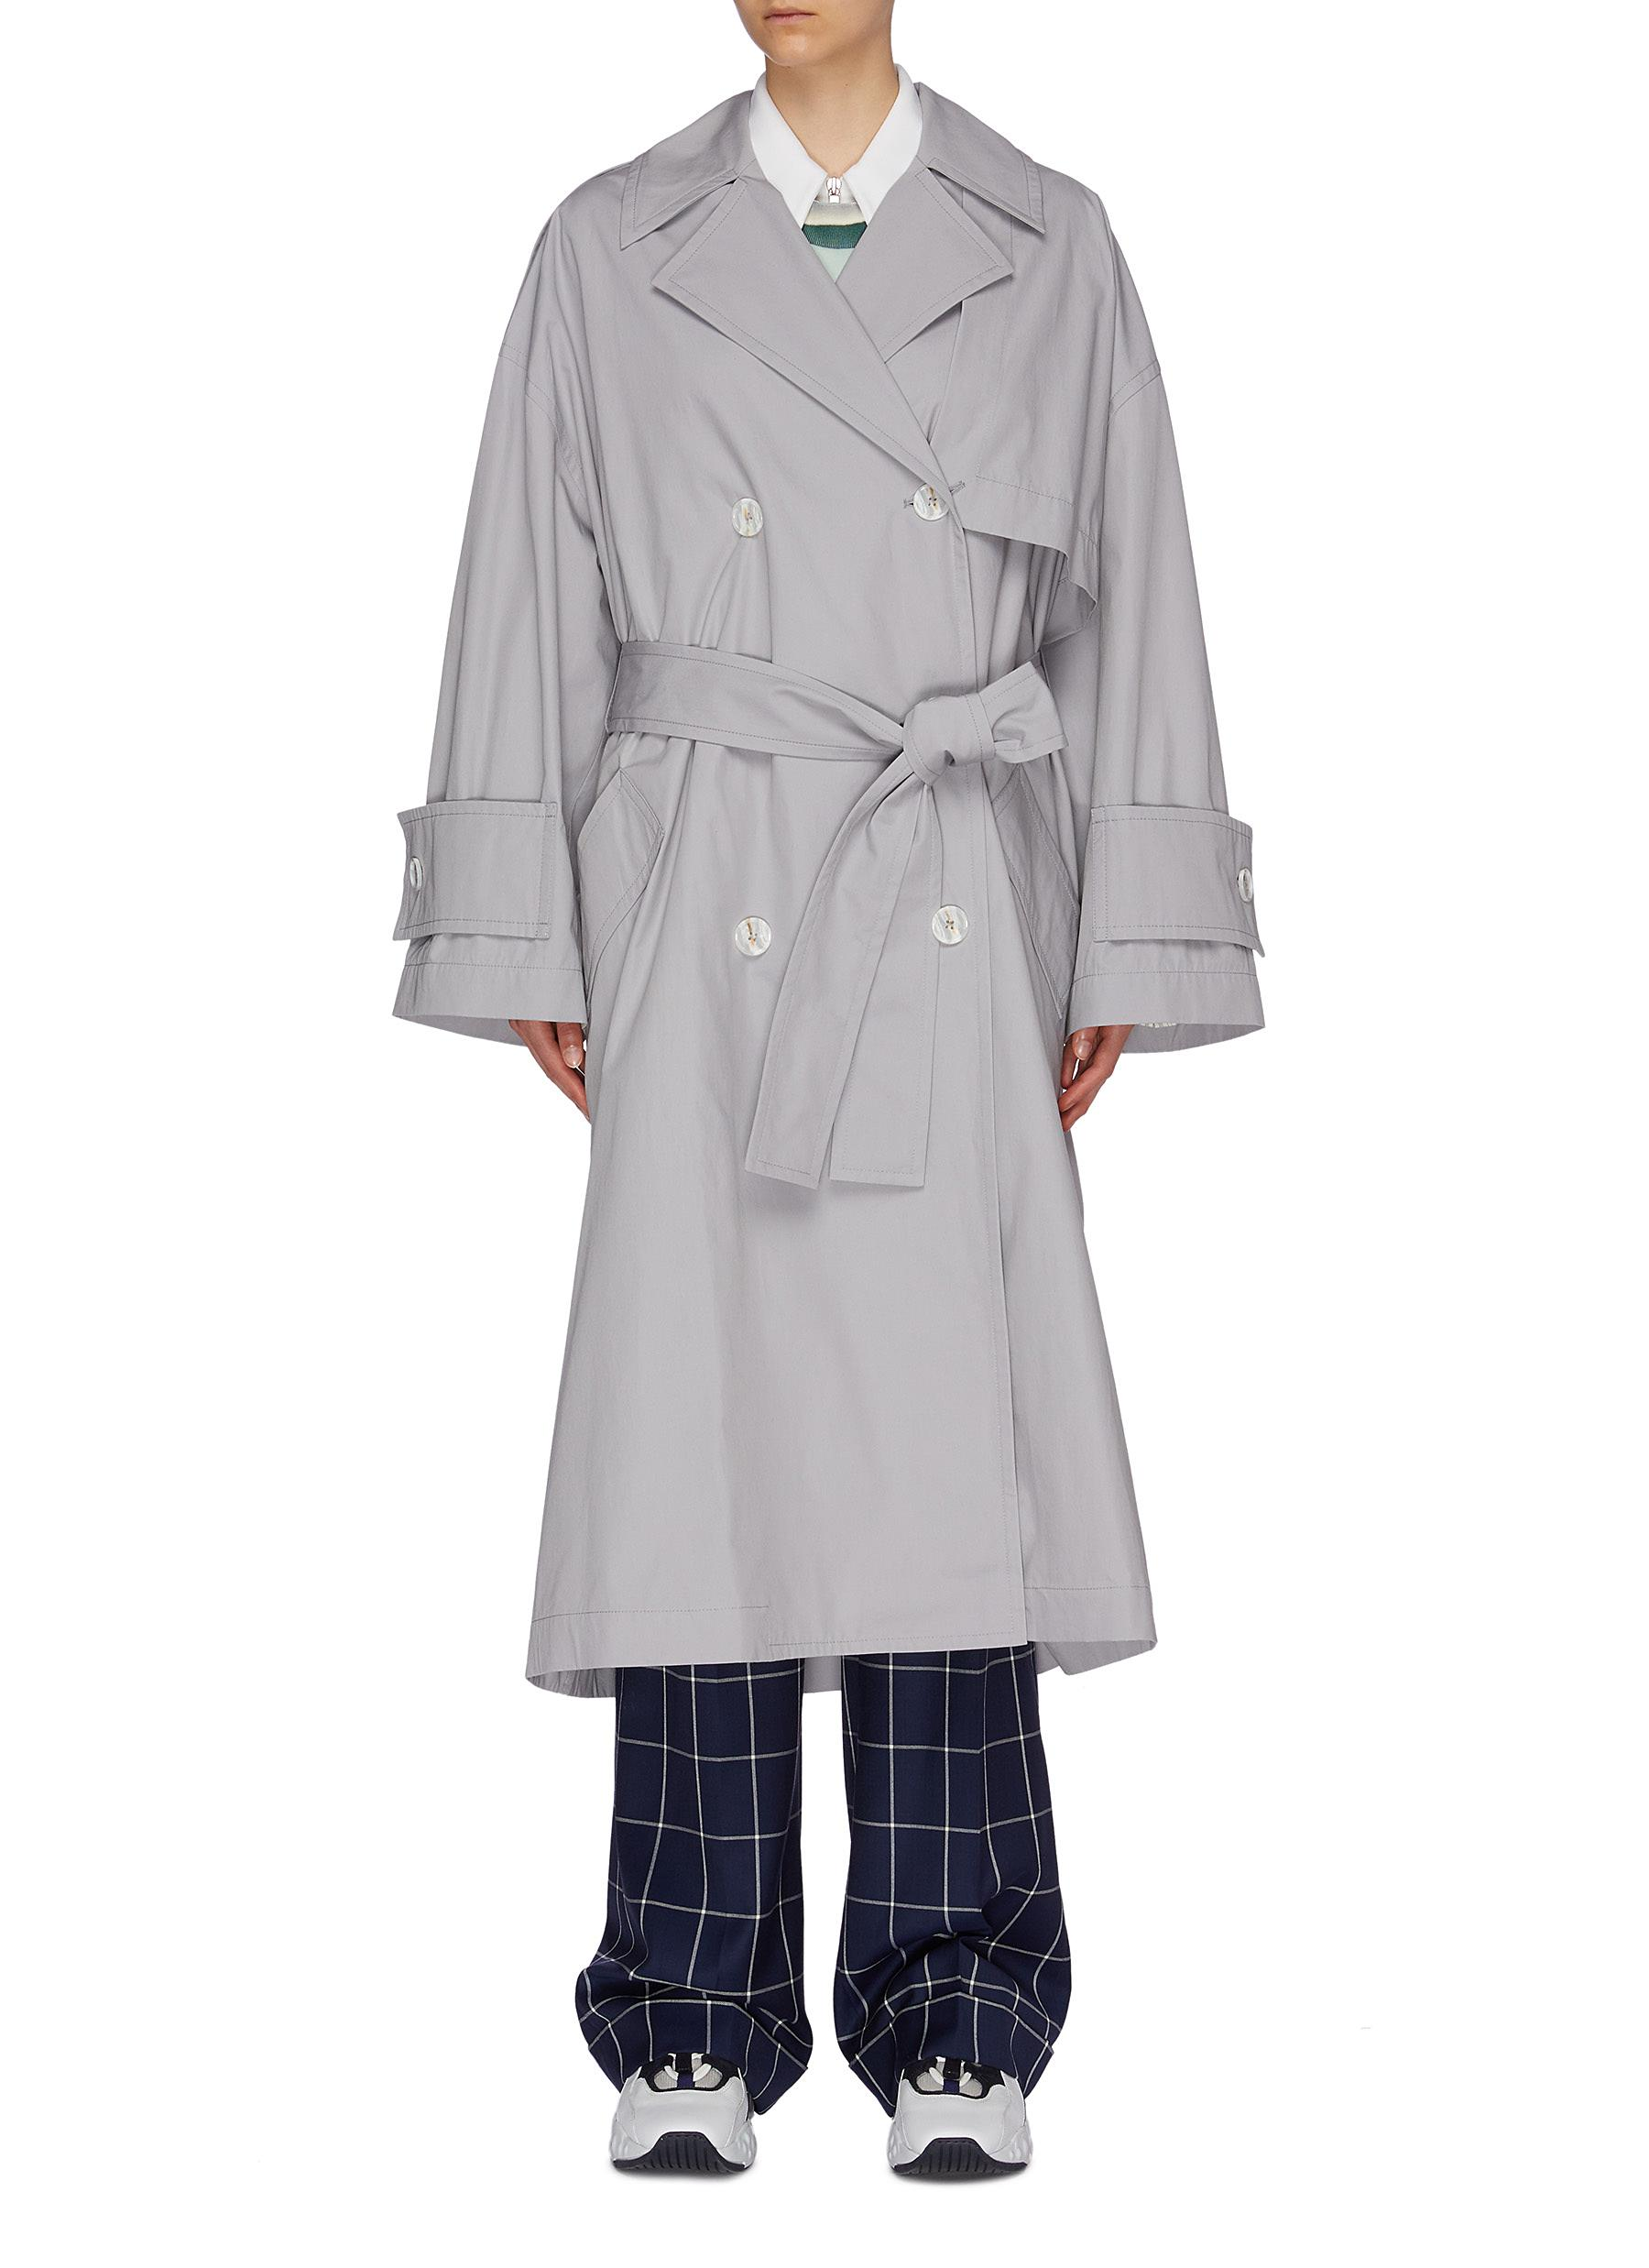 Oversized trench coat by Acne Studios